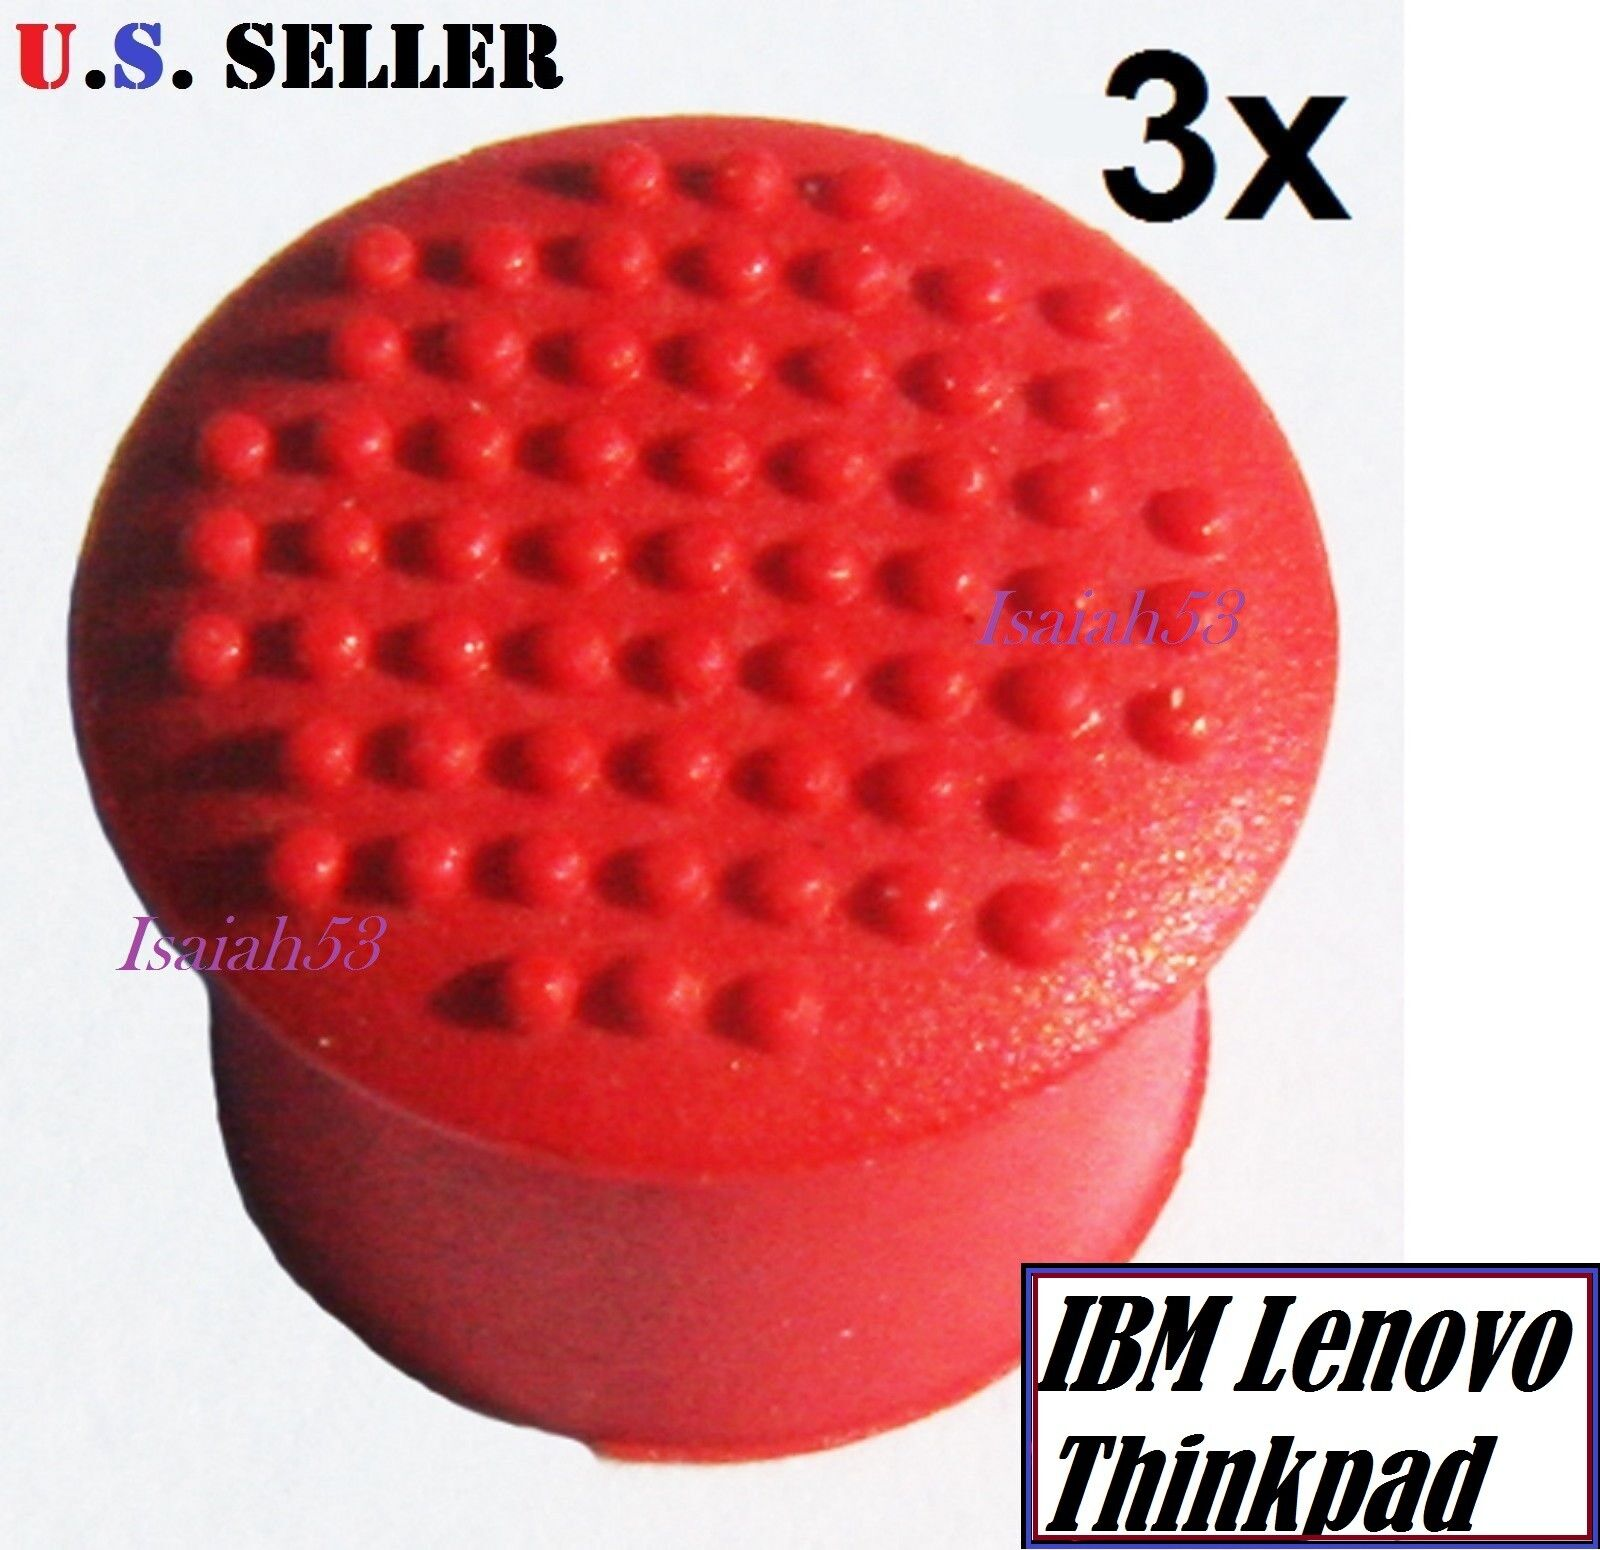 soft 3x IBM Thinkpad Laptop Mouse TrackPoint Red Cap